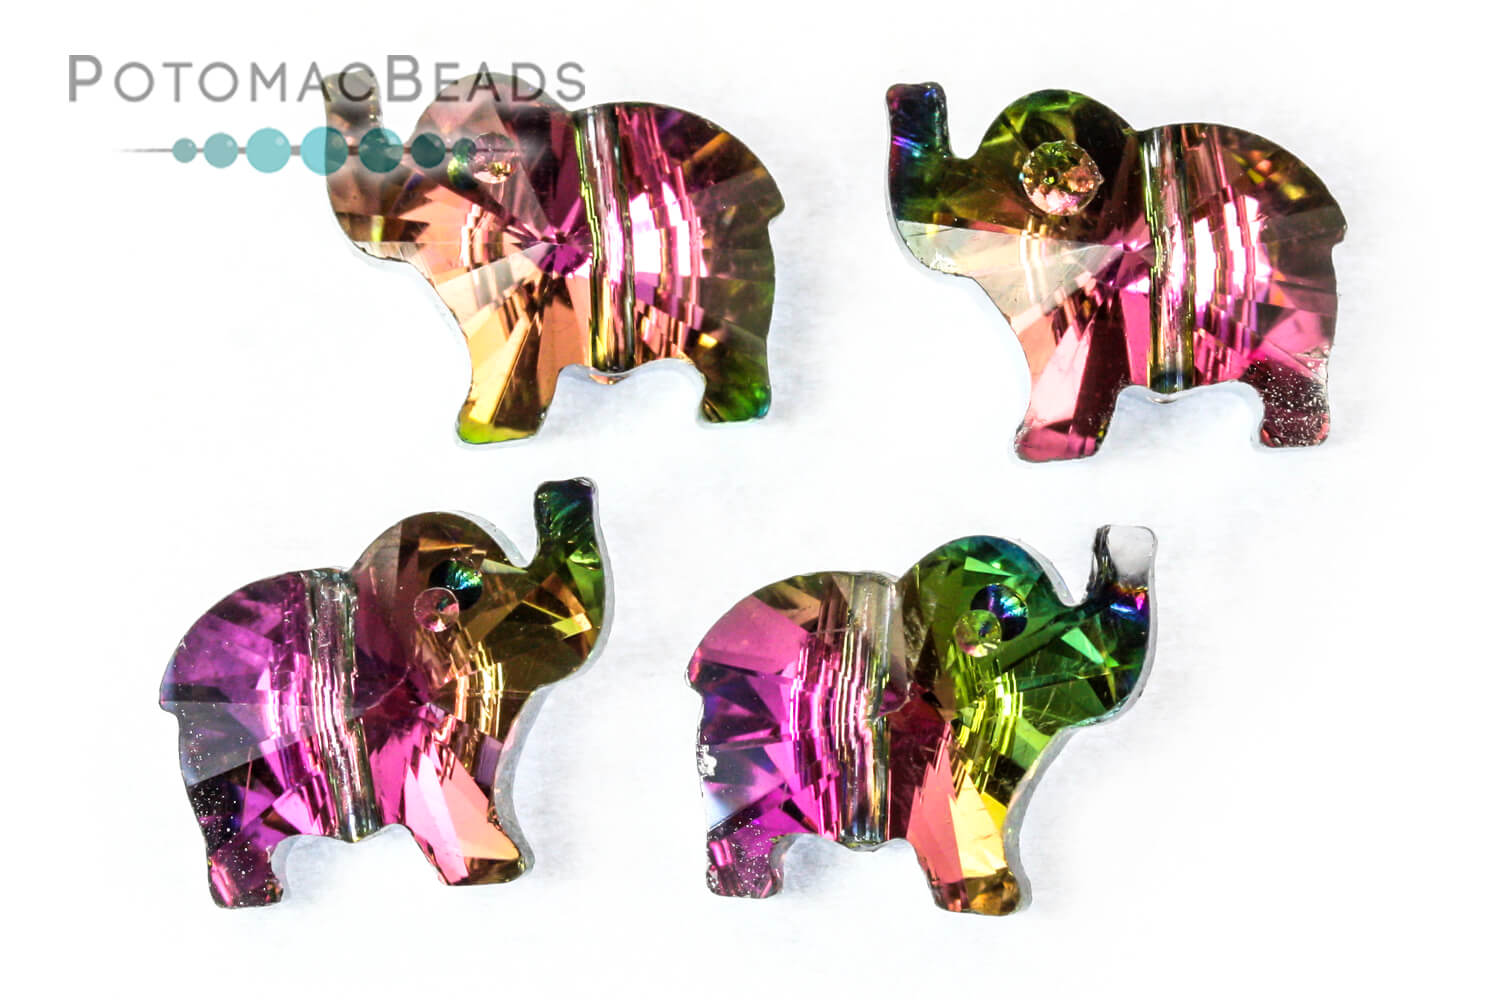 Potomac Exclusives / Potomac Crystals (All) / Potomac Crystal Elephants